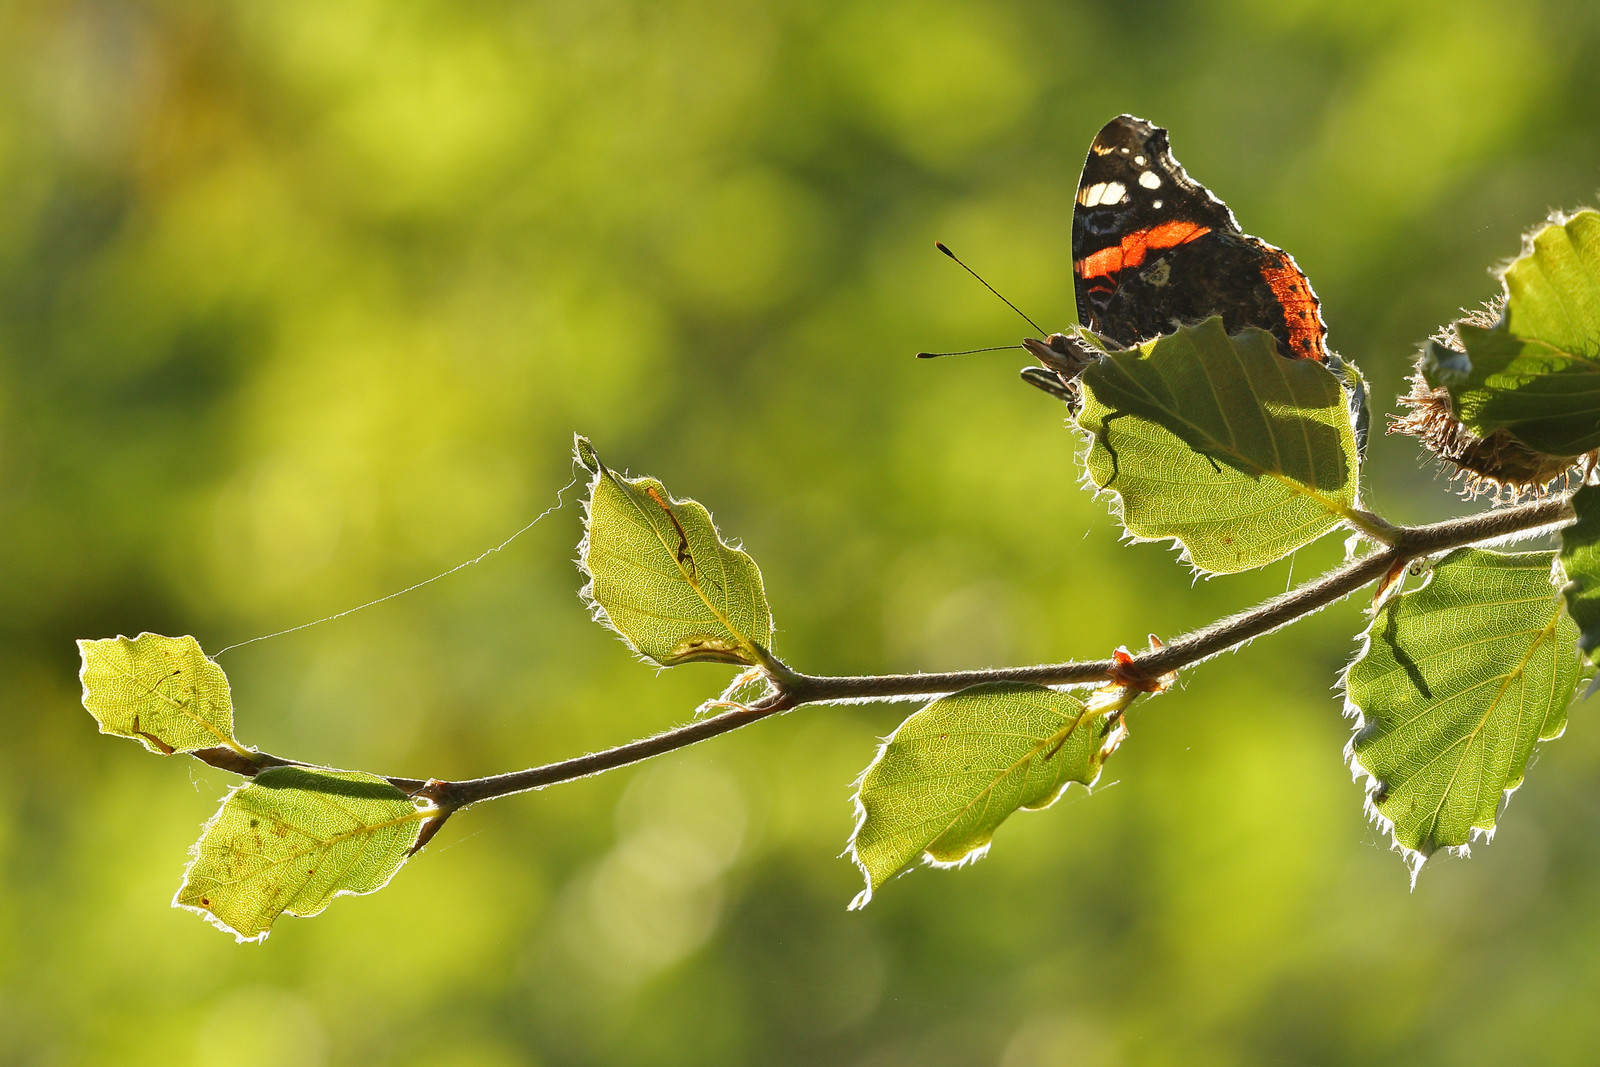 Red Admiral on branch